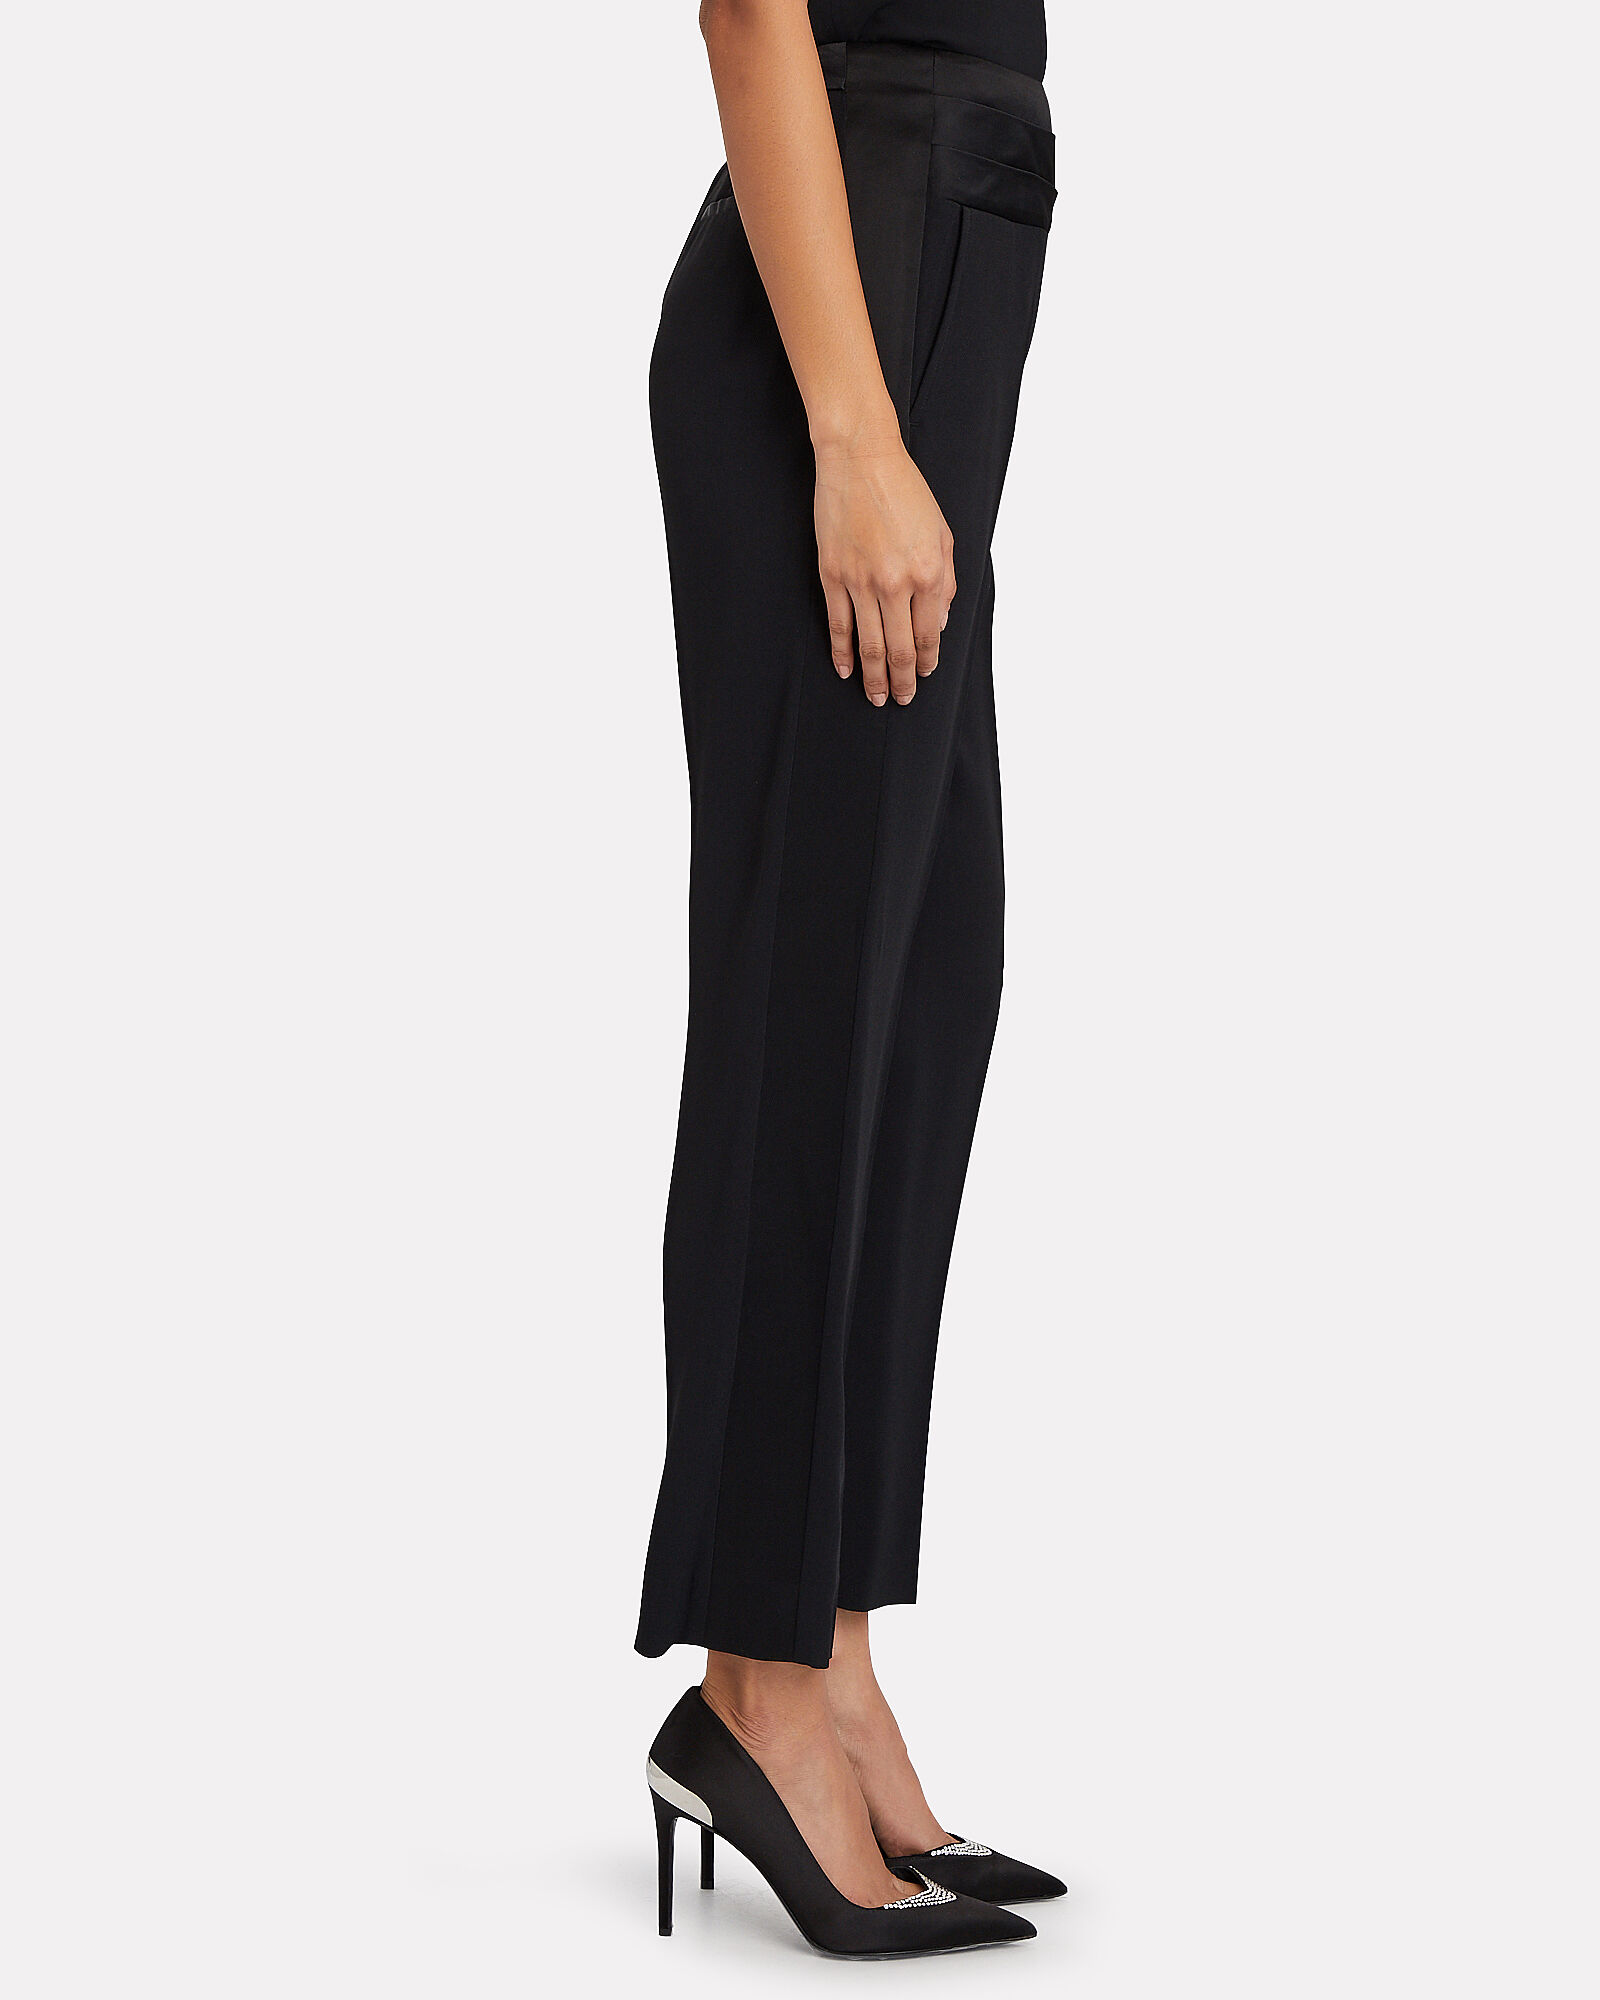 High-Rise Tuxedo Pants, BLACK, hi-res